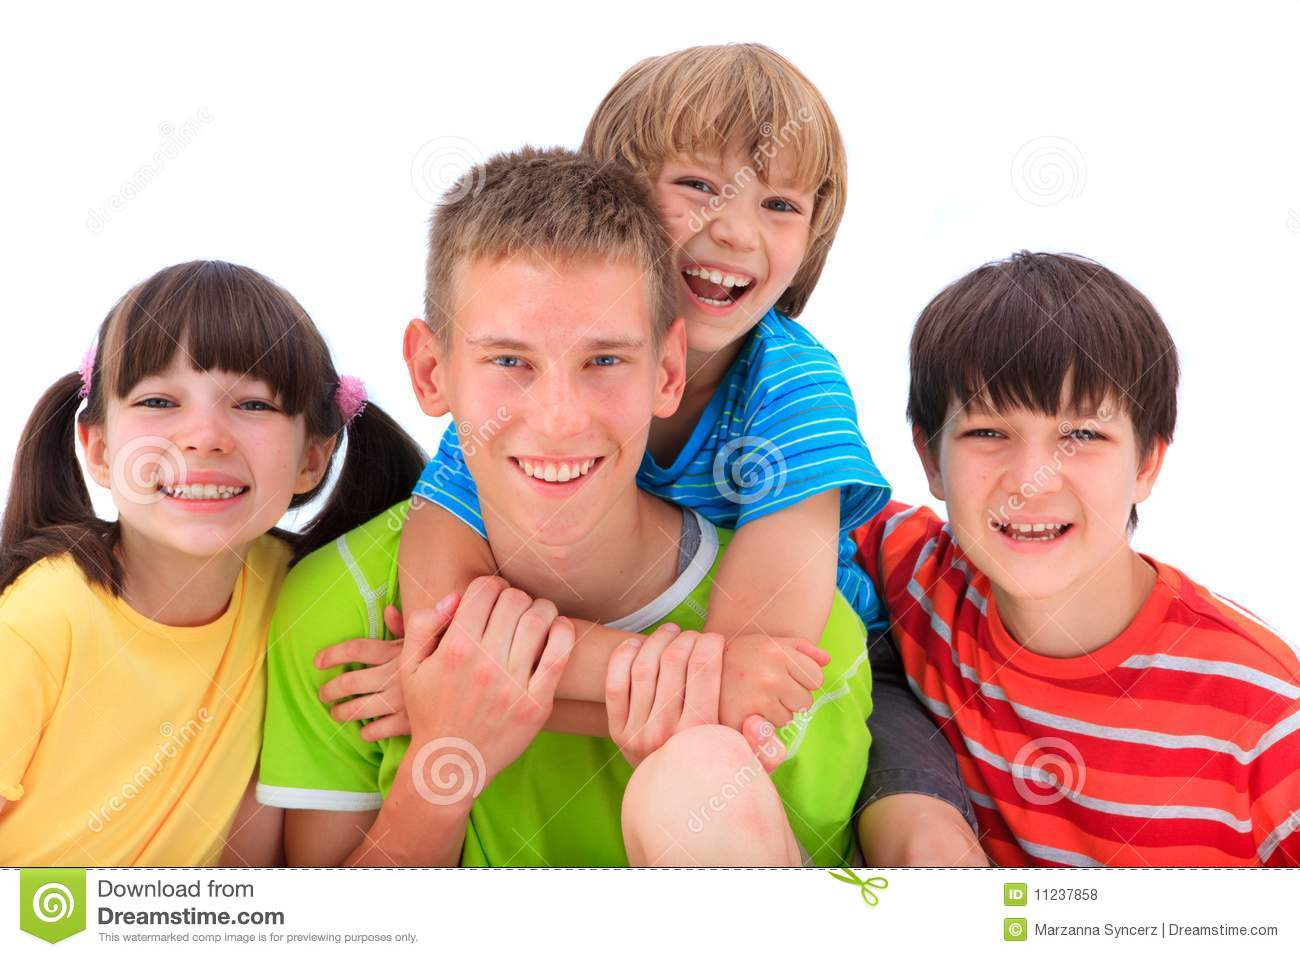 Happy, smiling kids stock photo. Image of happy, smiling ...